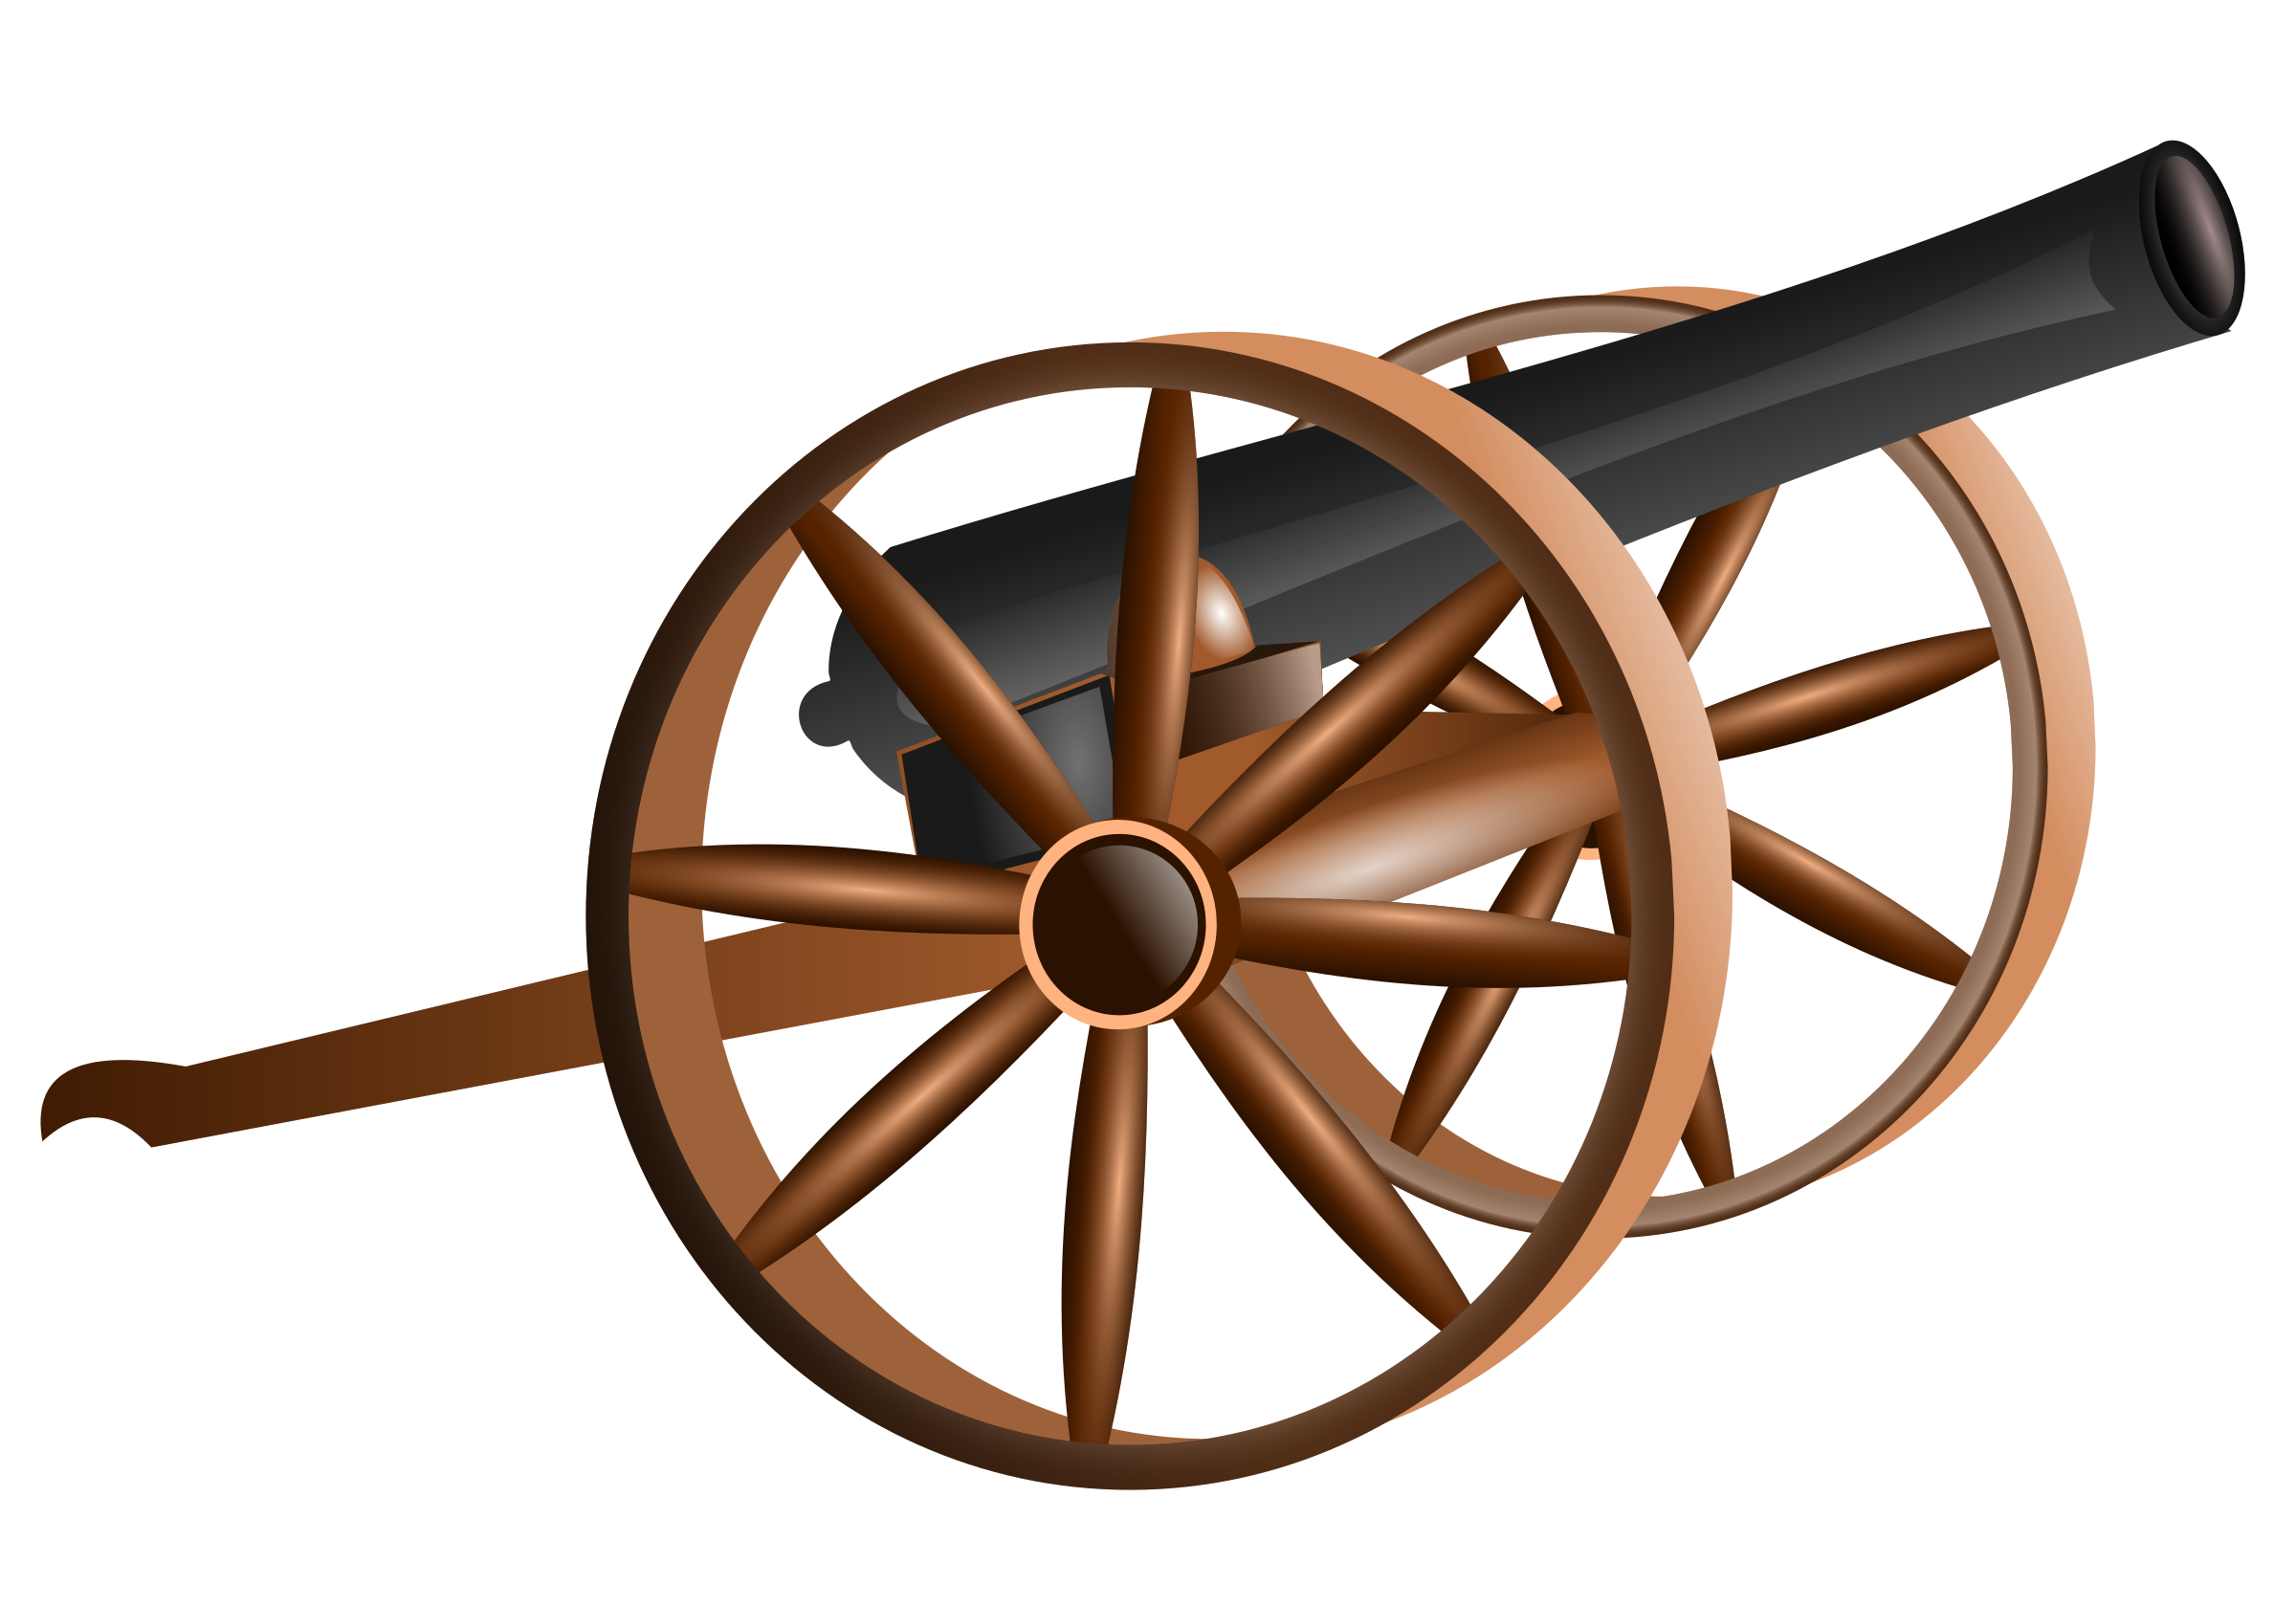 cannon by hatalar205